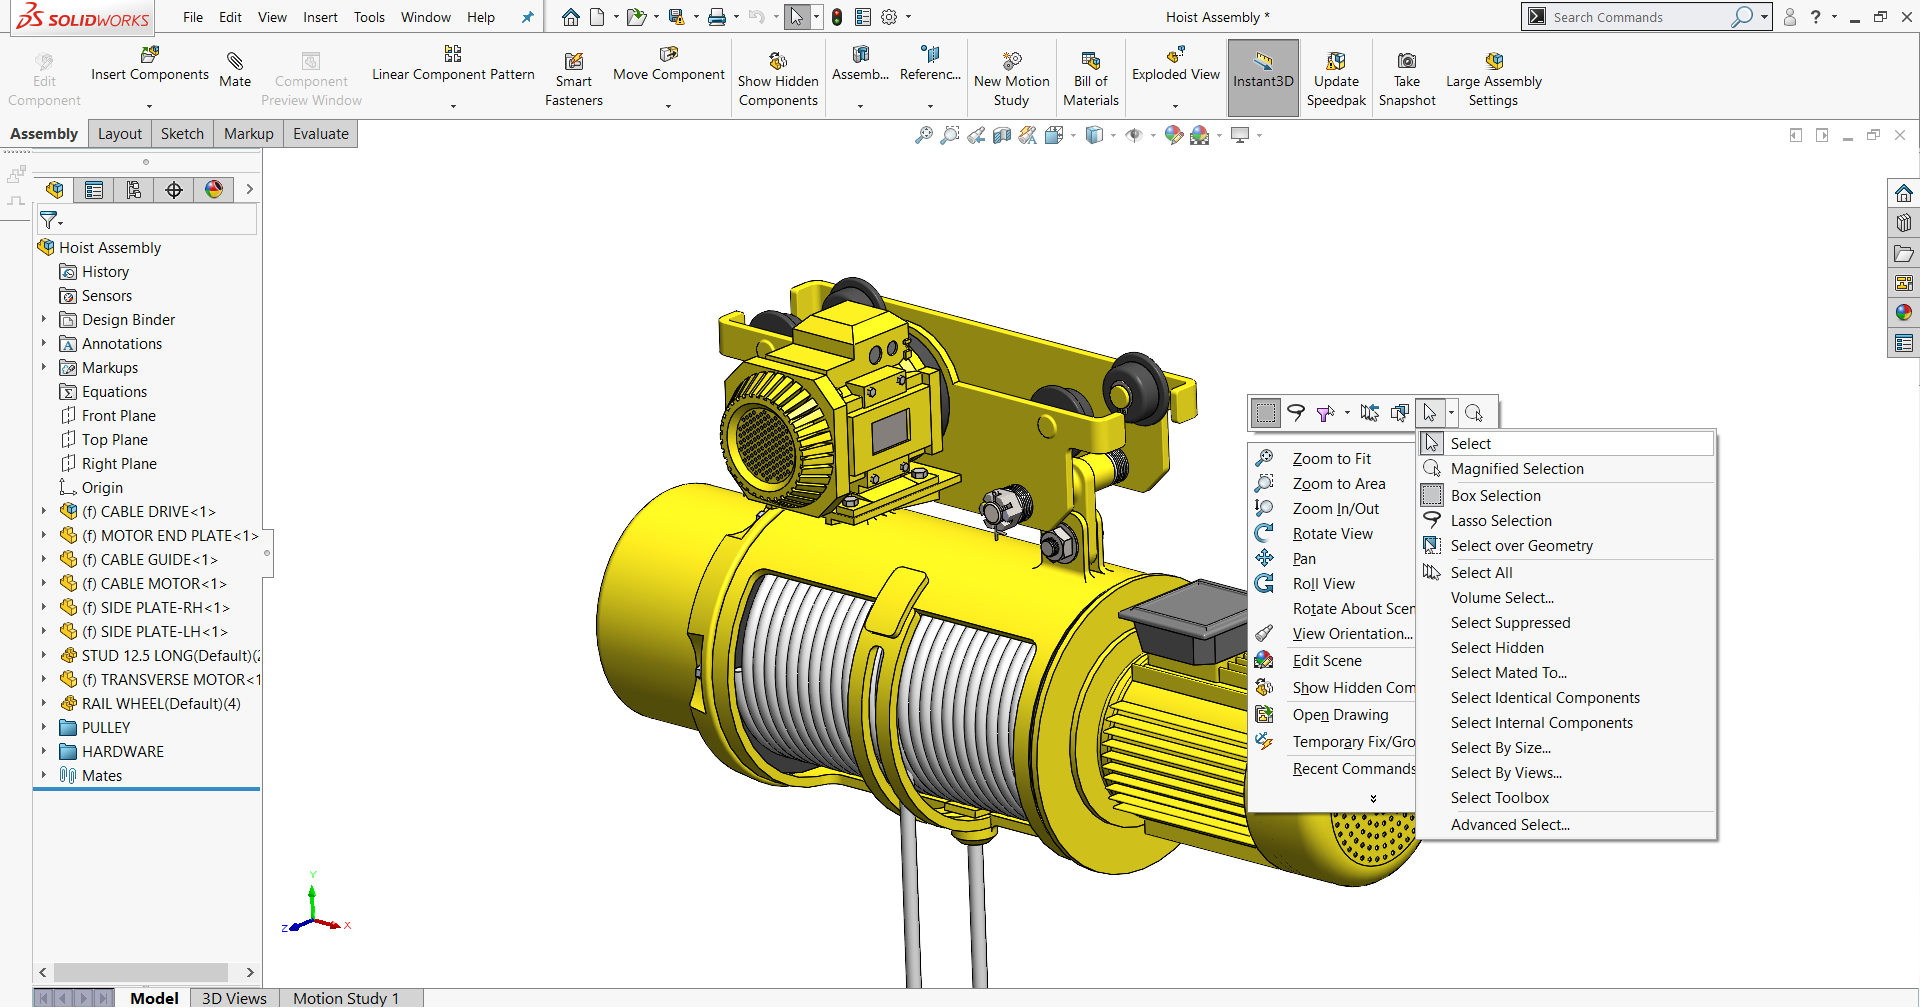 SOLIDWORKS Standard toolbar area